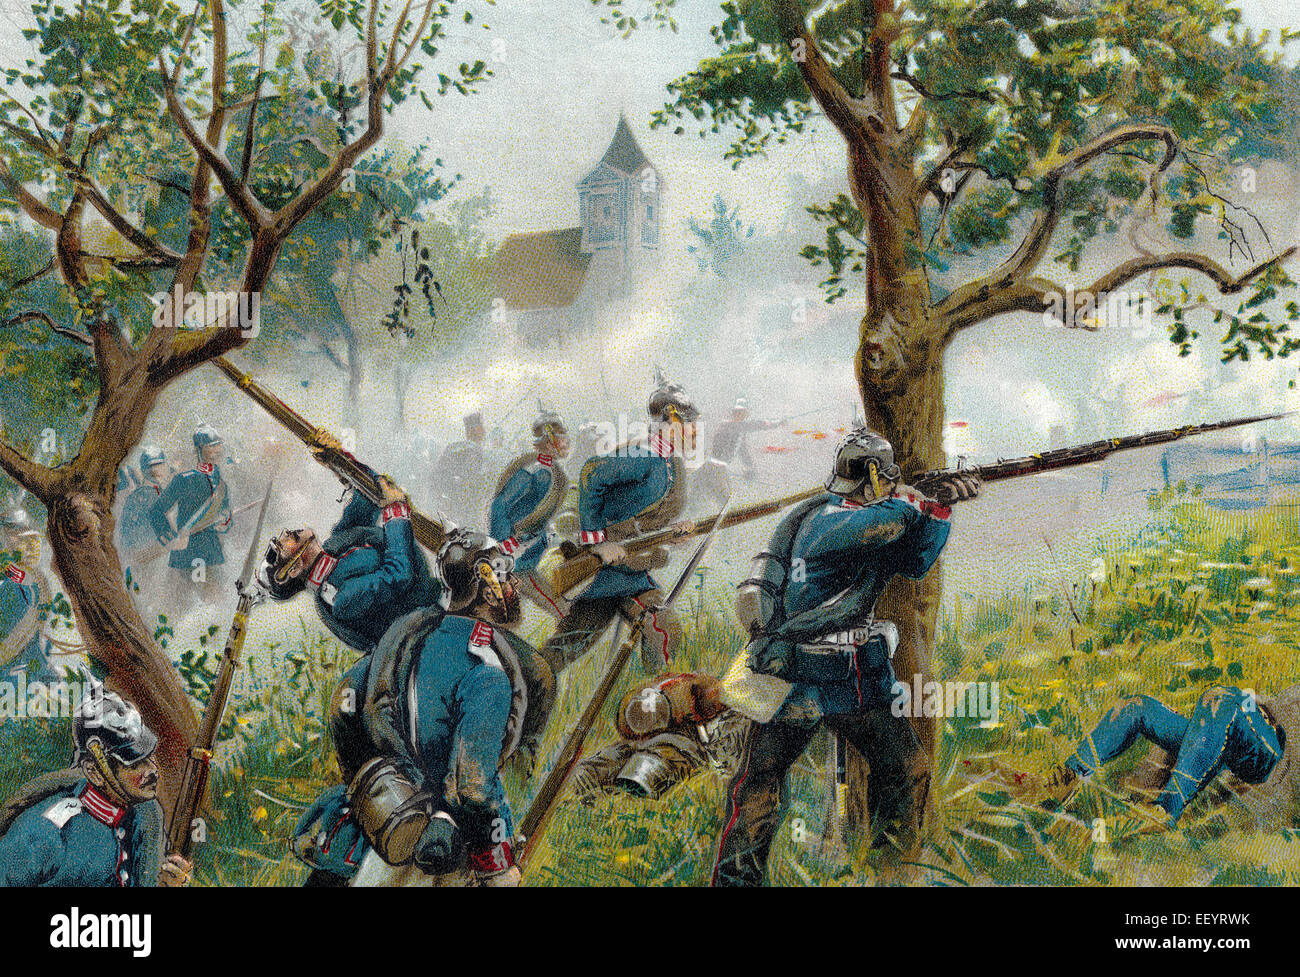 The Battle of Königgrätz or the Battle of Sadowa, Sadová, or Hradec Králové, the decisive - Stock Image